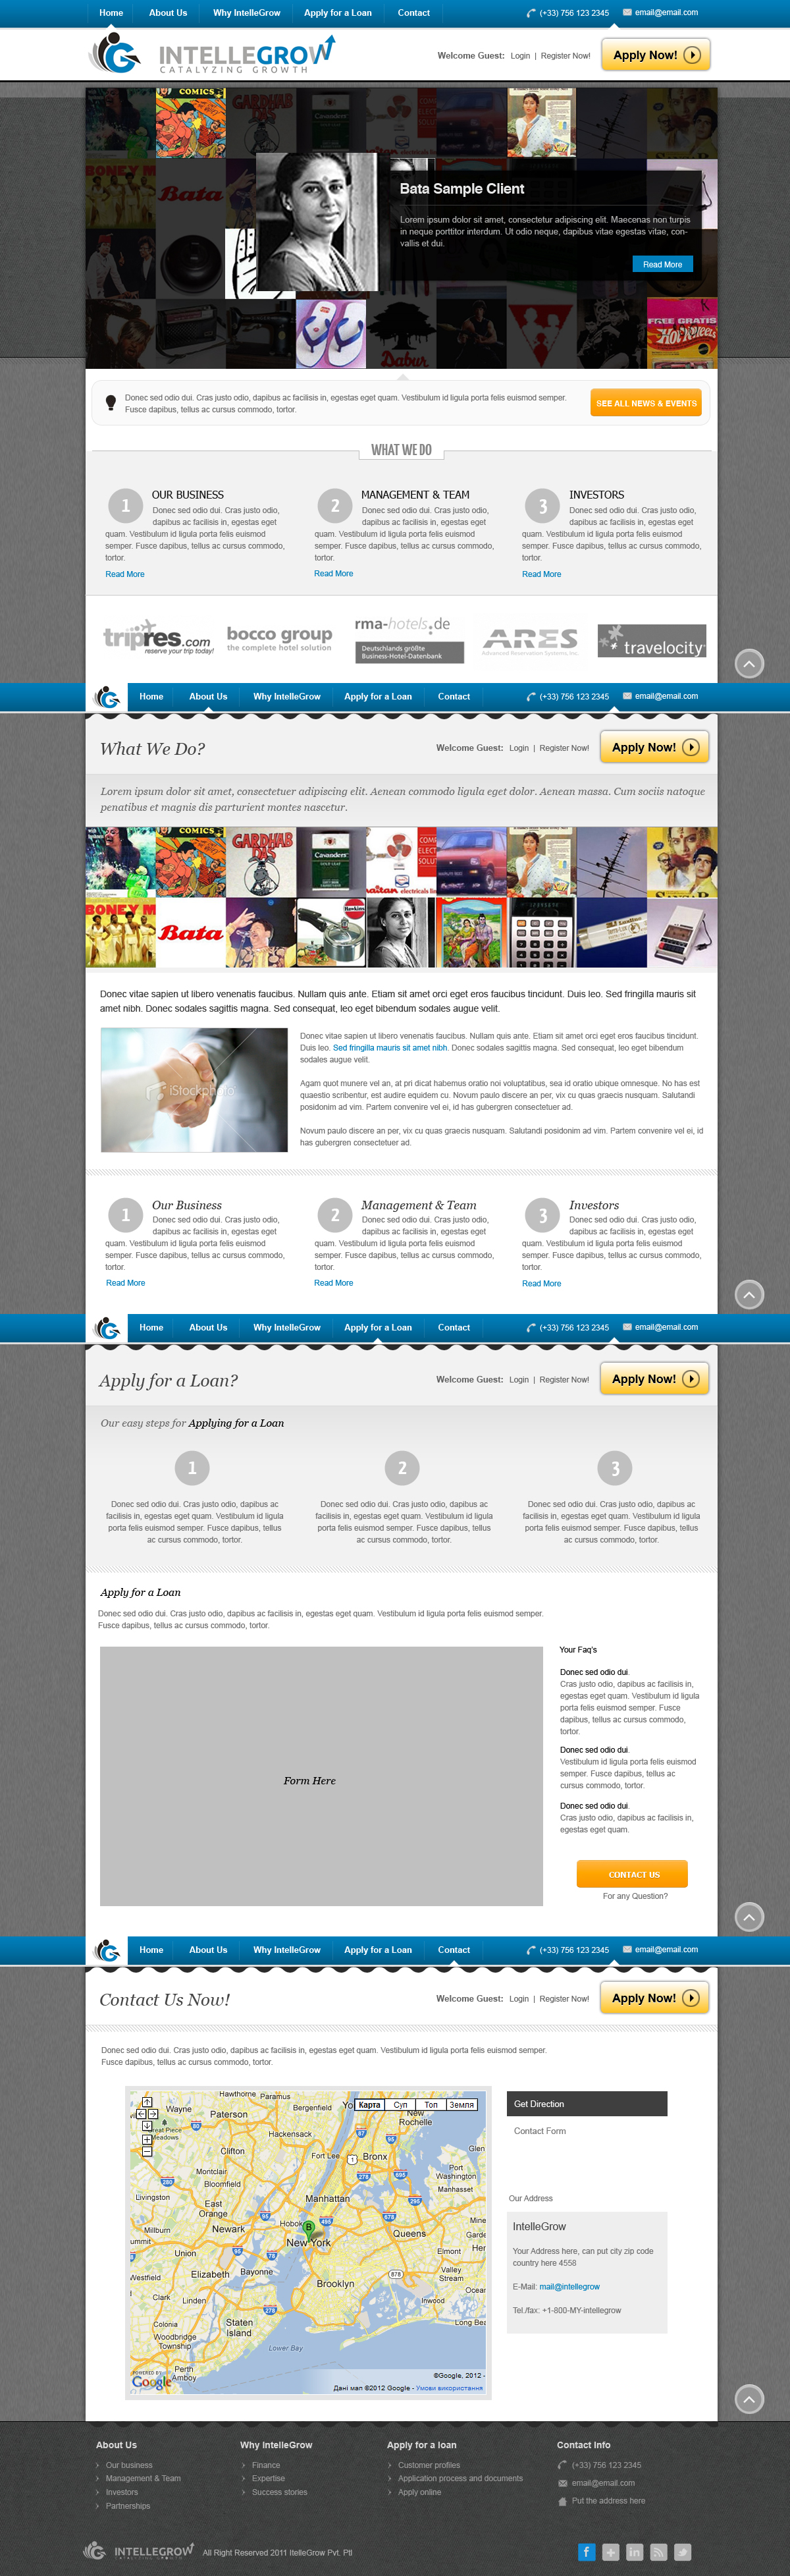 Web Page Design by rockpinoy - Entry No. 33 in the Web Page Design Contest IntelleGrow Finance Web Page Design.